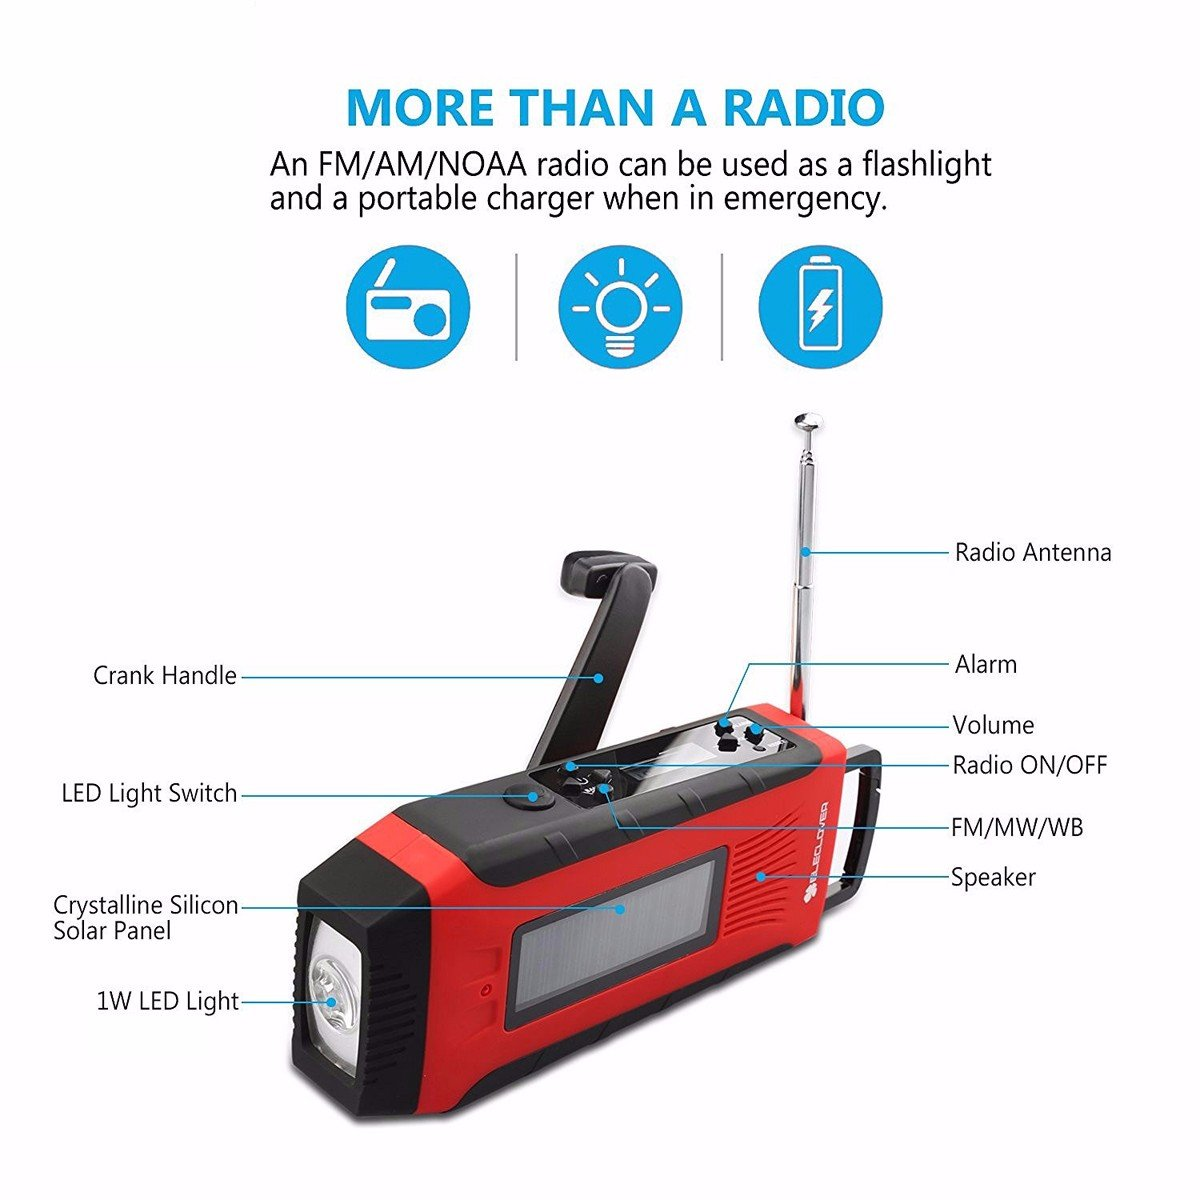 OUTERDO Weather Radio Home LED Flashlight 4330350794 Emergency Radio Dynamo Survival Solar Hand Crank Self Powered AM//FM//NOAA Weather Radio,LED Flashlight,Phone Charger Power Bank with Cables for Camping,Travel